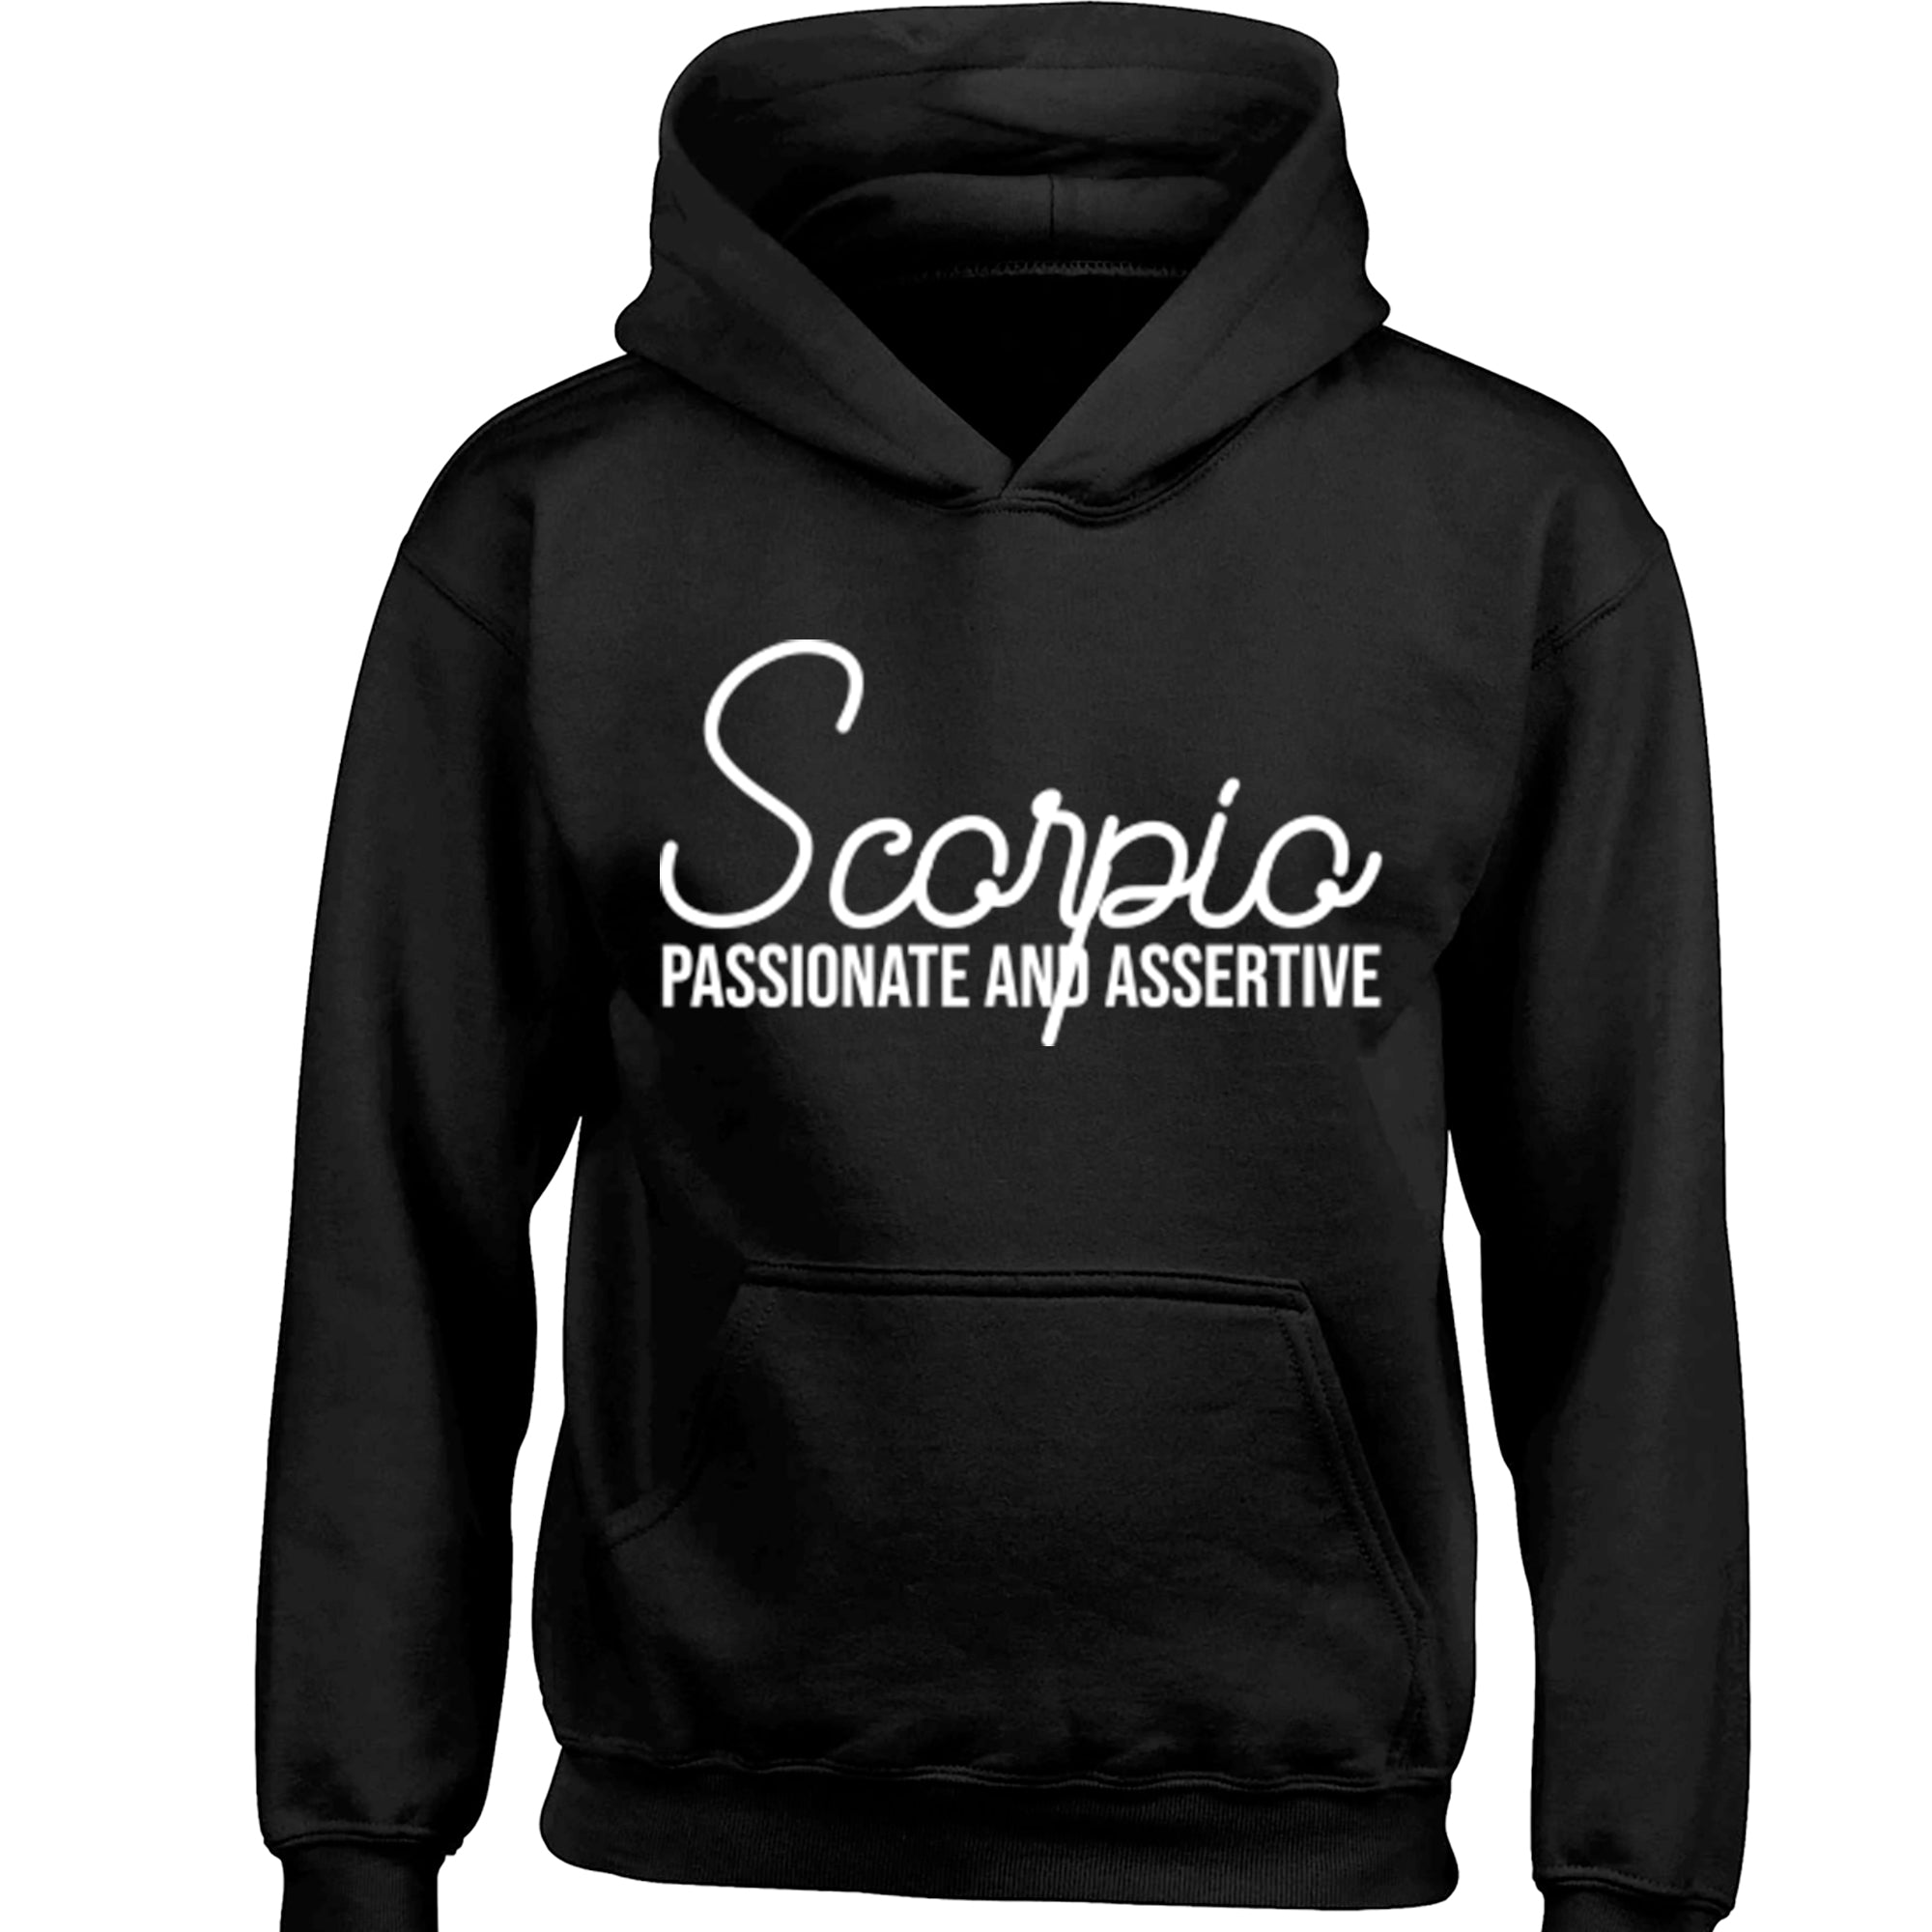 Scorpio, Passionate And Assertive Childrens Ages 3/4-12/14 Unisex Hoodie S0443 - Illustrated Identity Ltd.